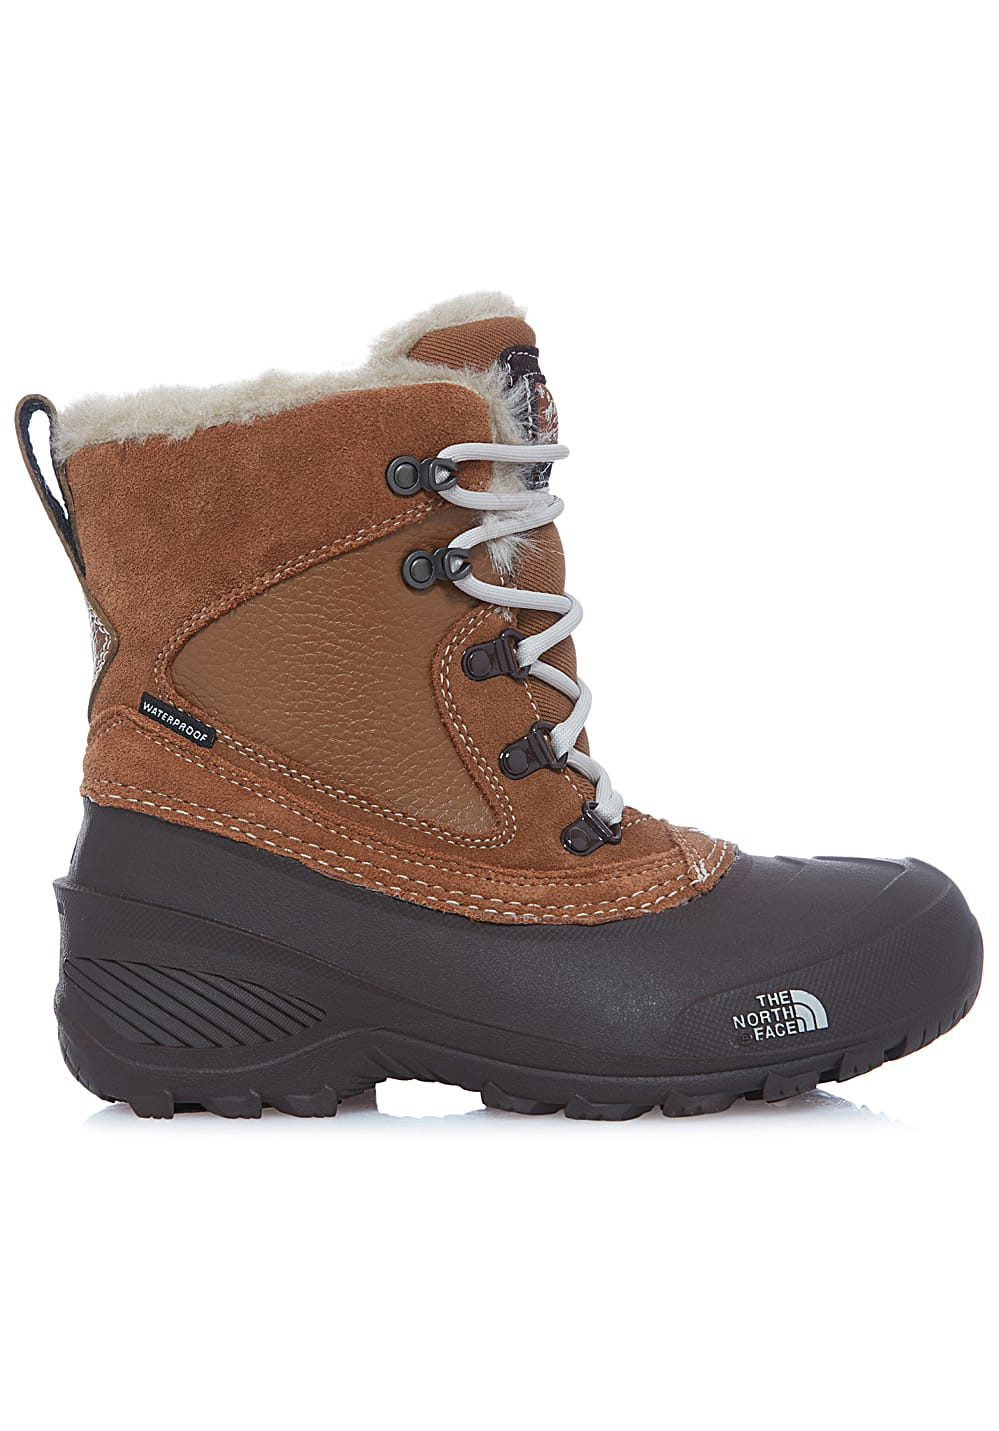 THE NORTH FACE Shlista ExTRem Bergschuhe - Braun - 37